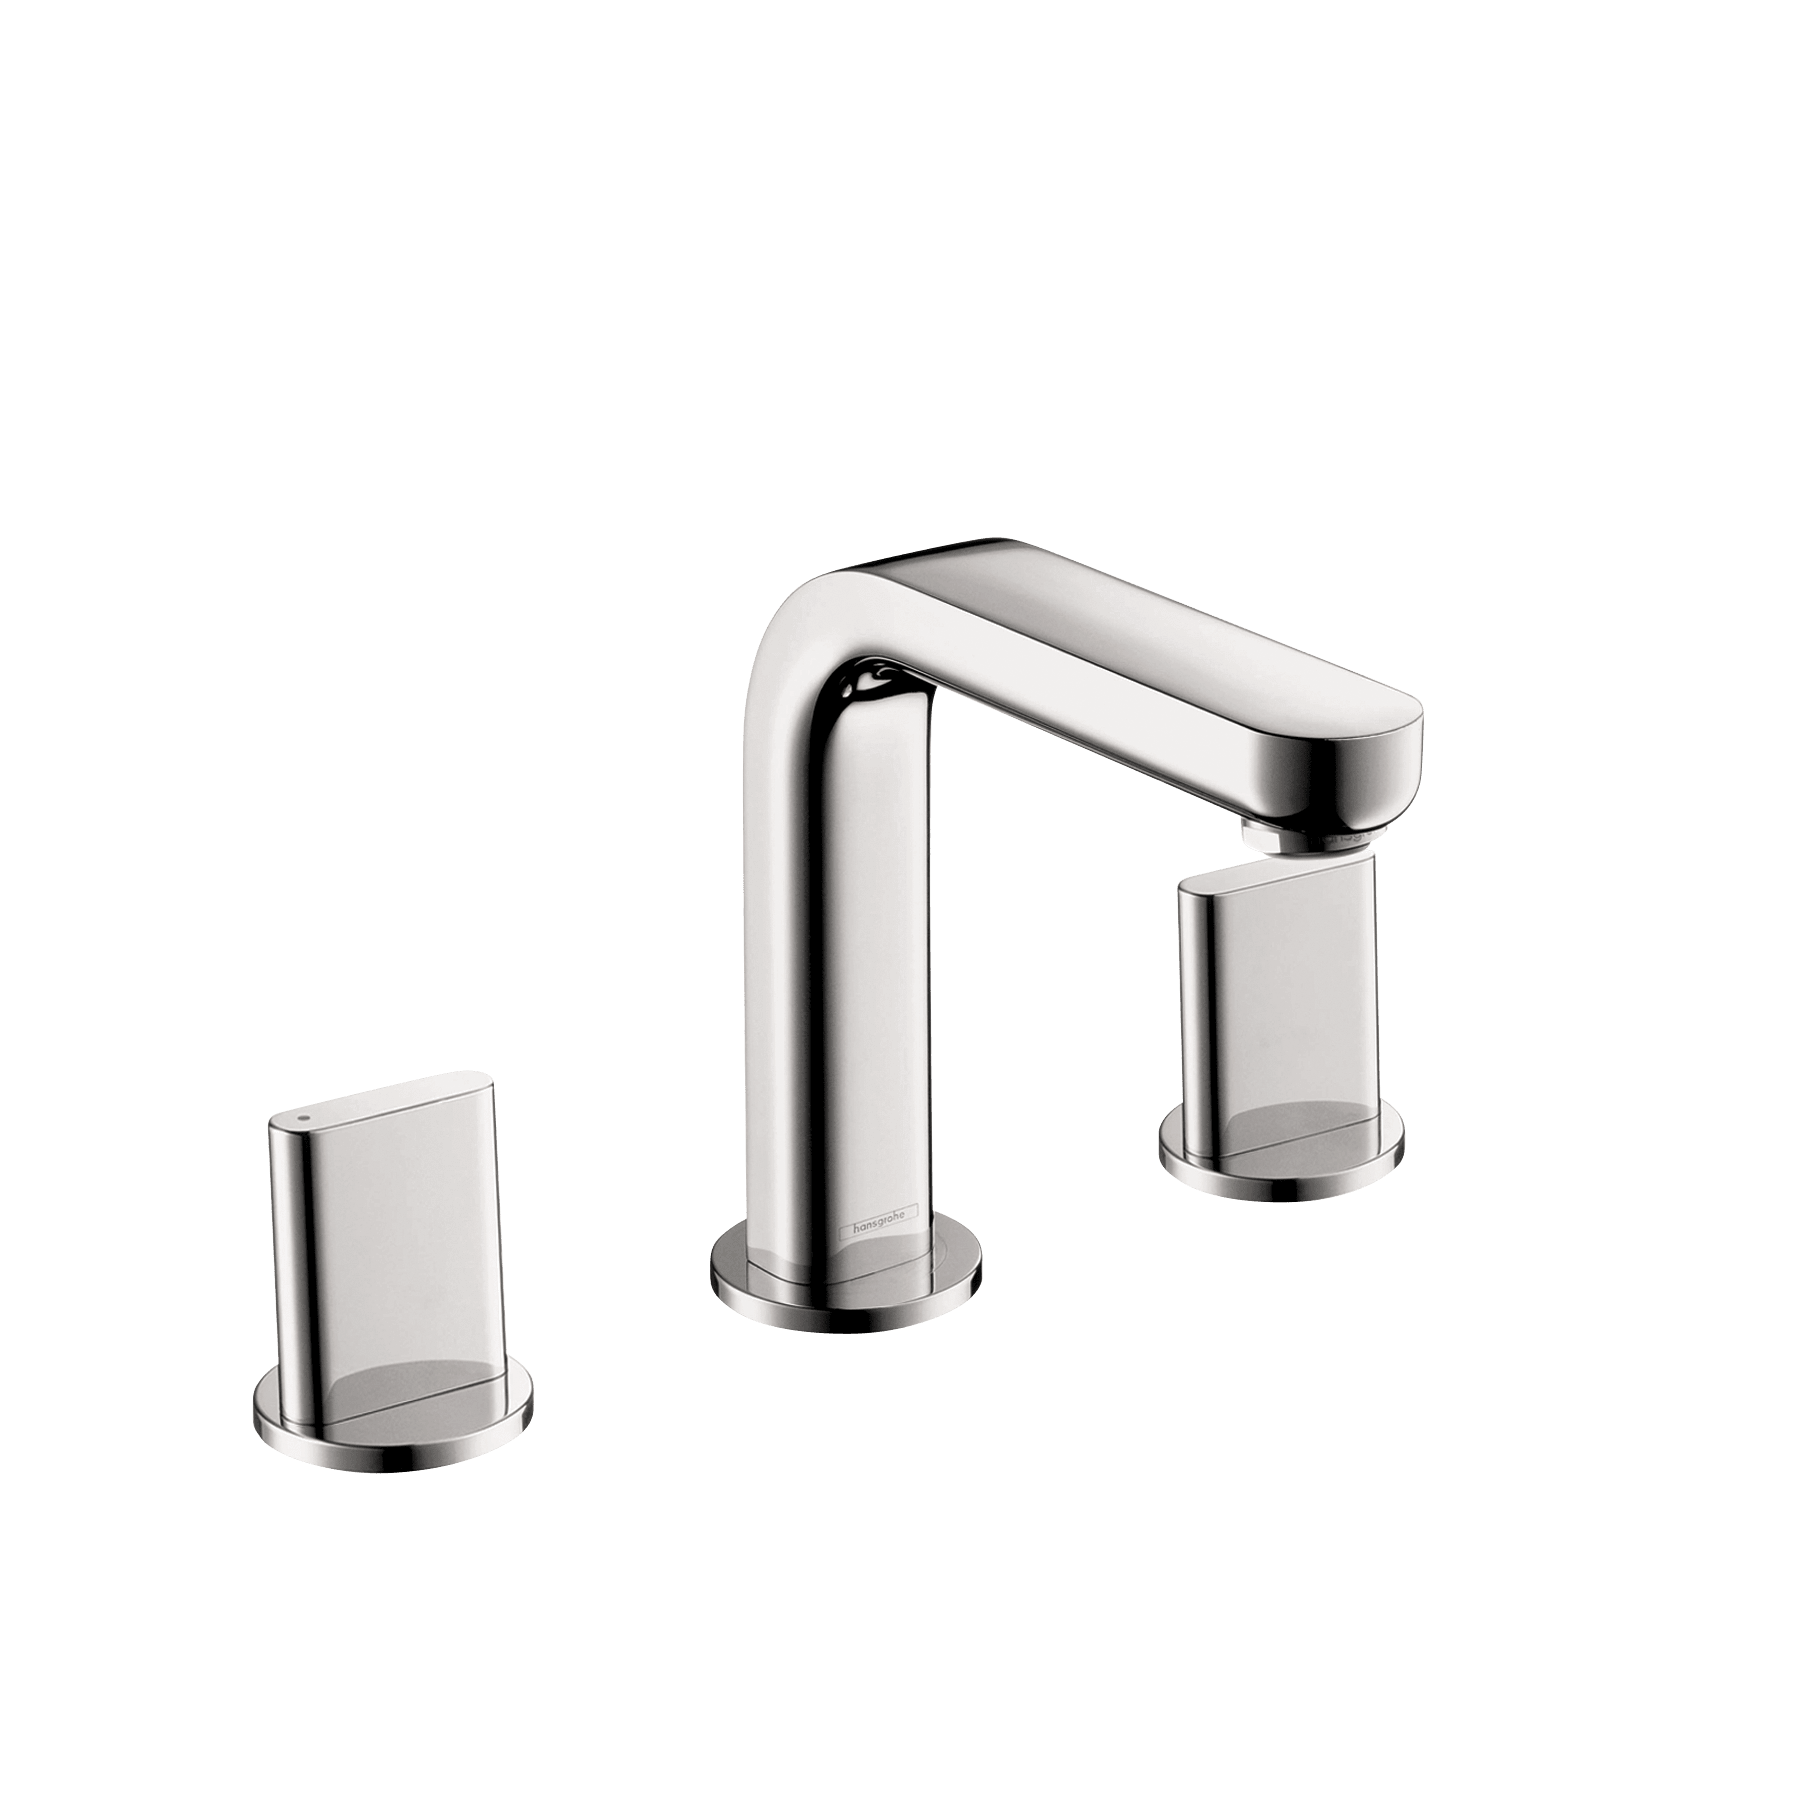 Hansgrohe 31063 Metris S Widespread Lavatory Faucet | QualityBath.com